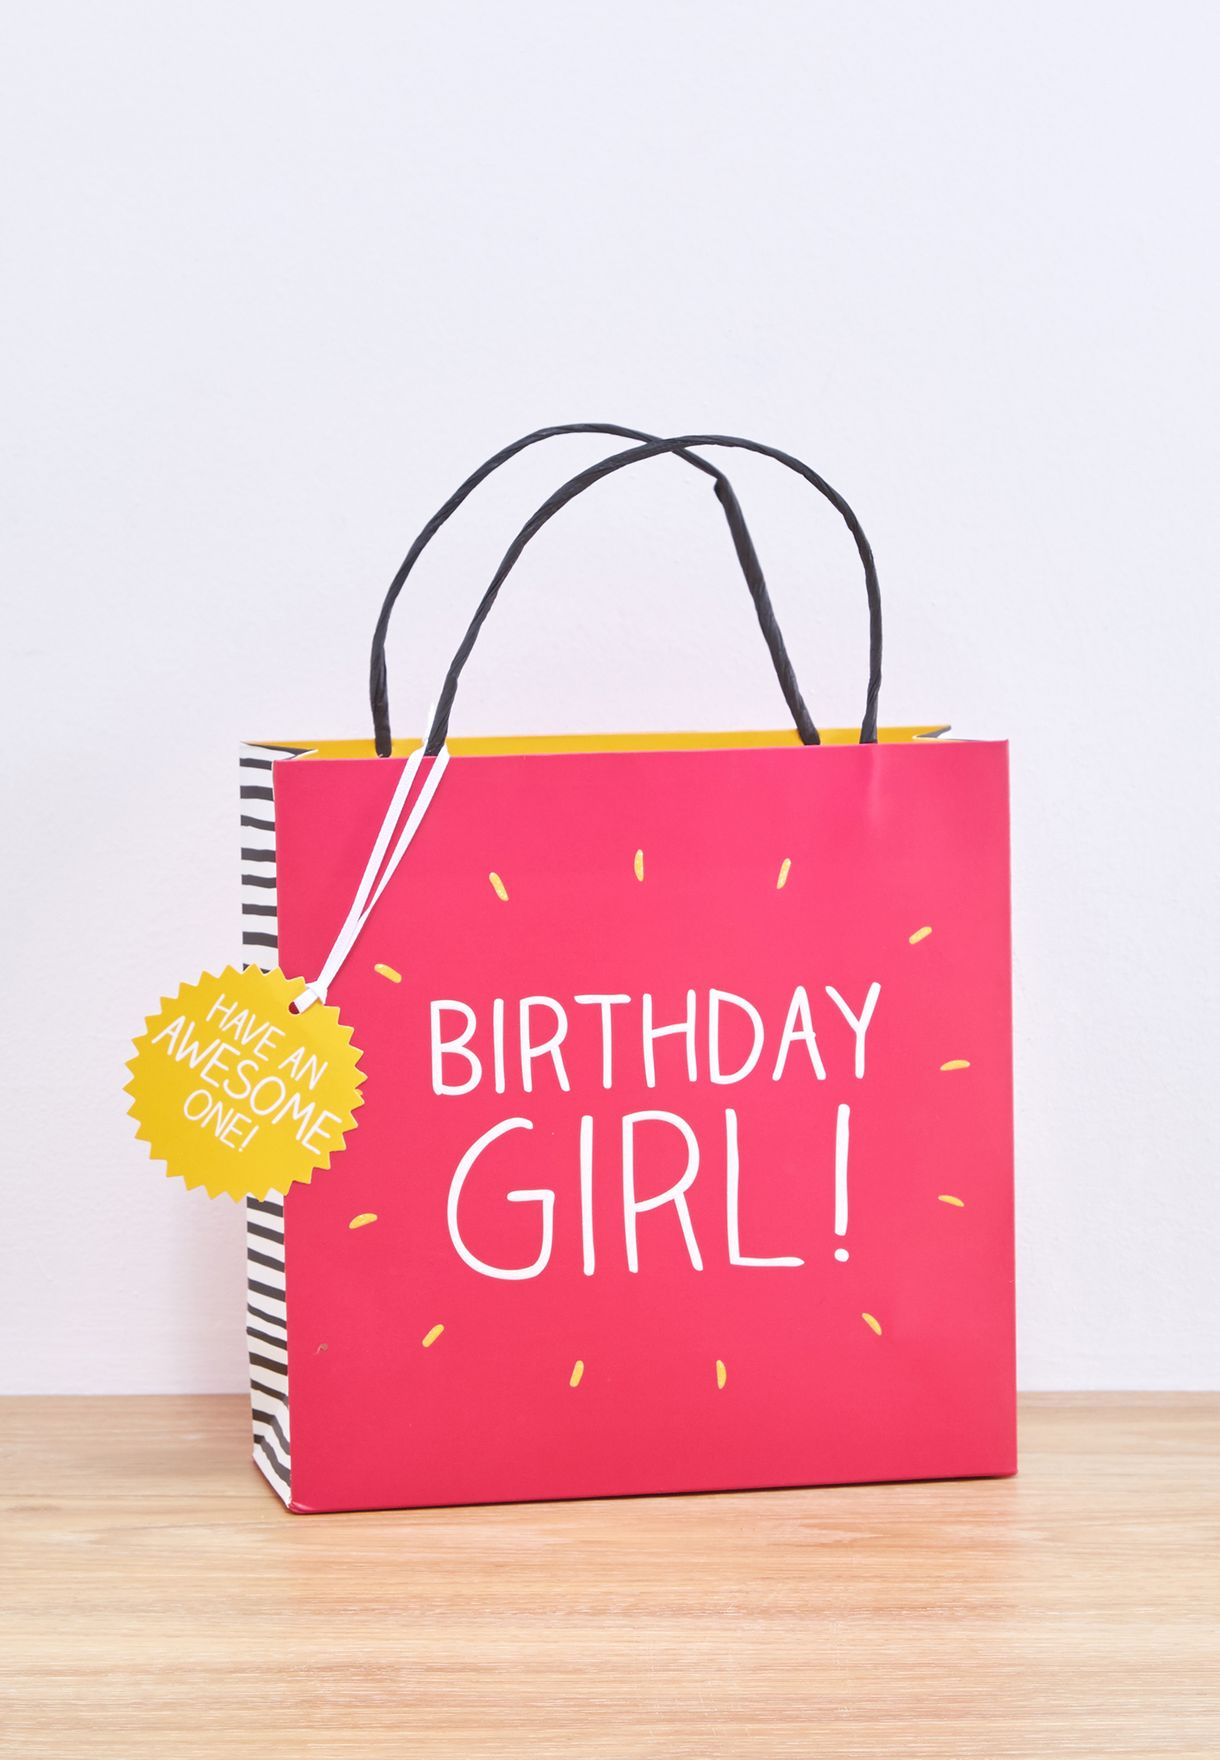 Shop Happy Jackson Prints Birthday Girl Gift Bag Small 3340303 For Women In Bahrain